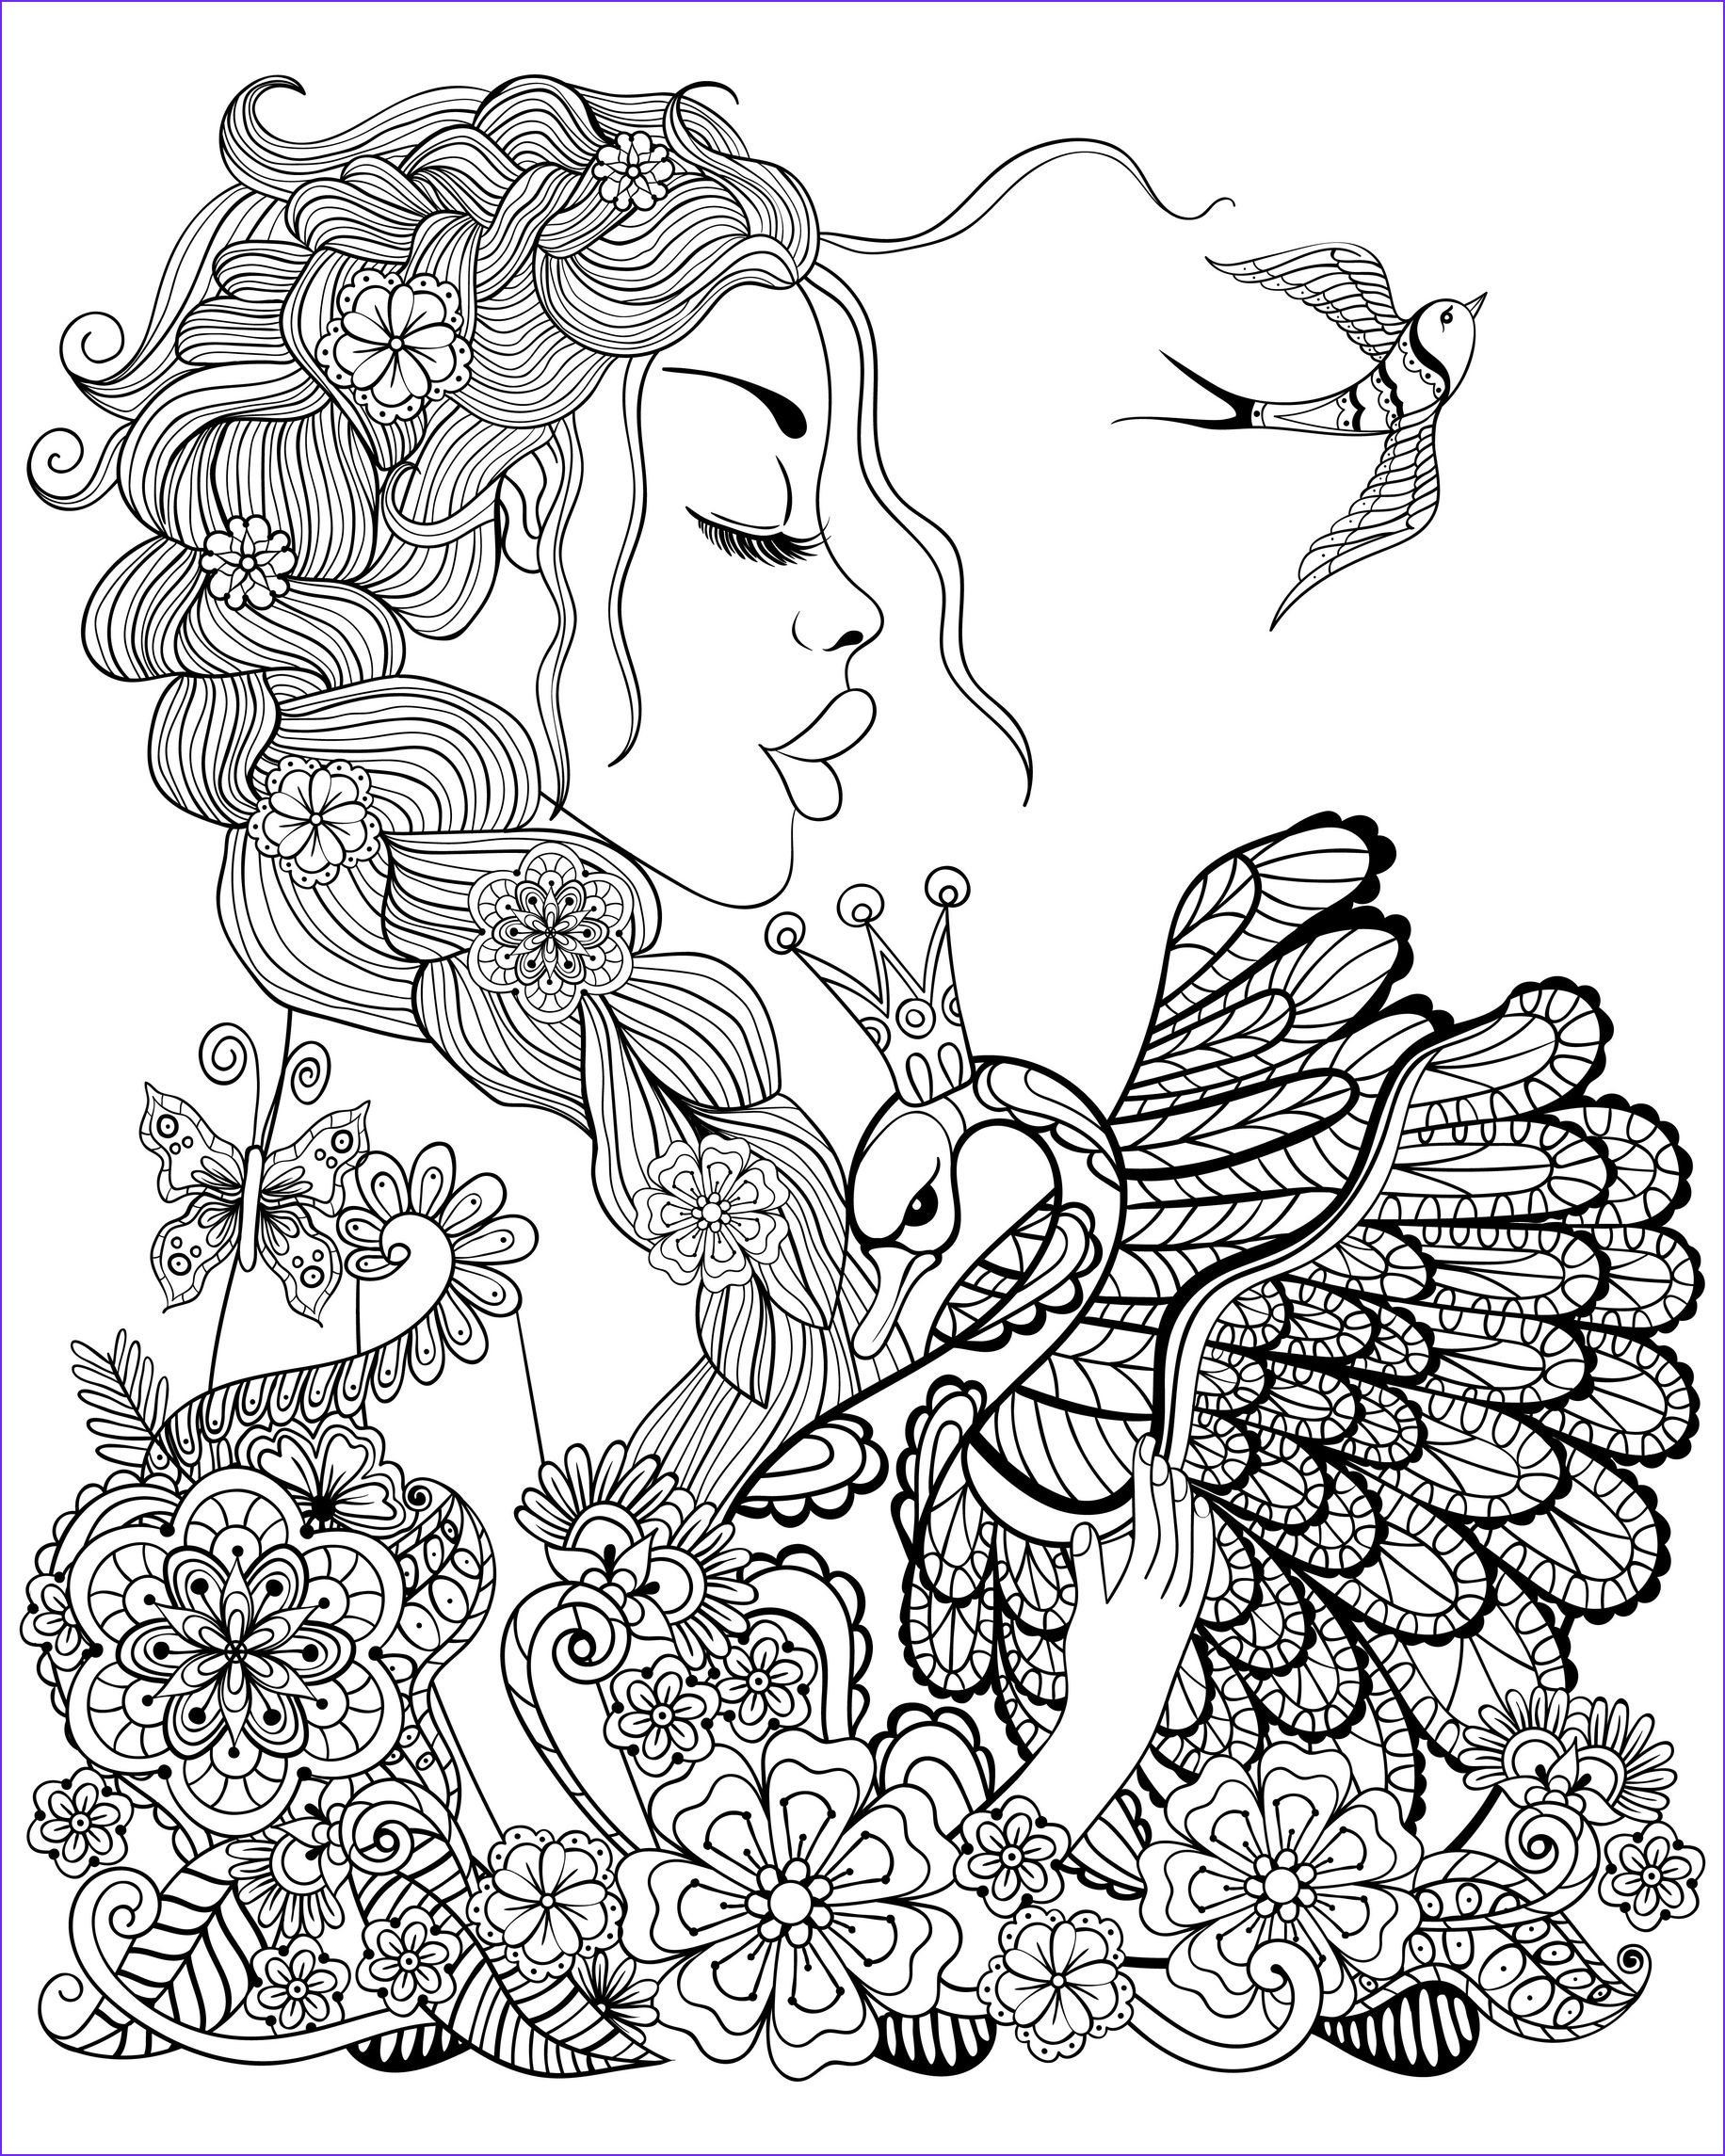 Adult Coloring Pages Birds Luxury Gallery Fairy Coloring Pages for Adults